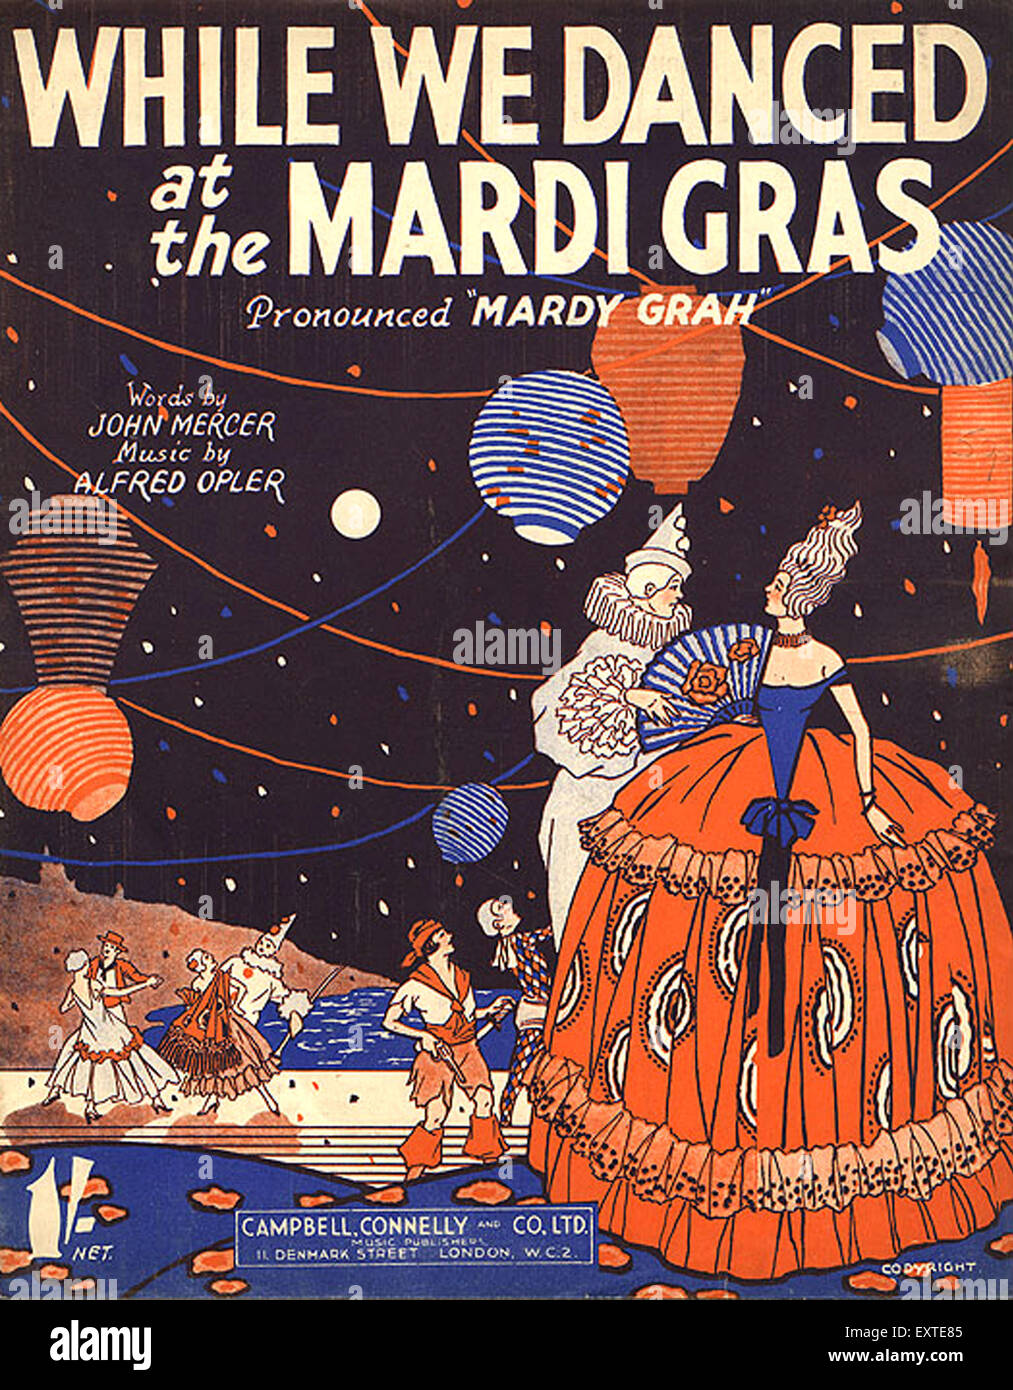 1930s UK While We Danced at the Mardi Gras Book Cover - Stock Image